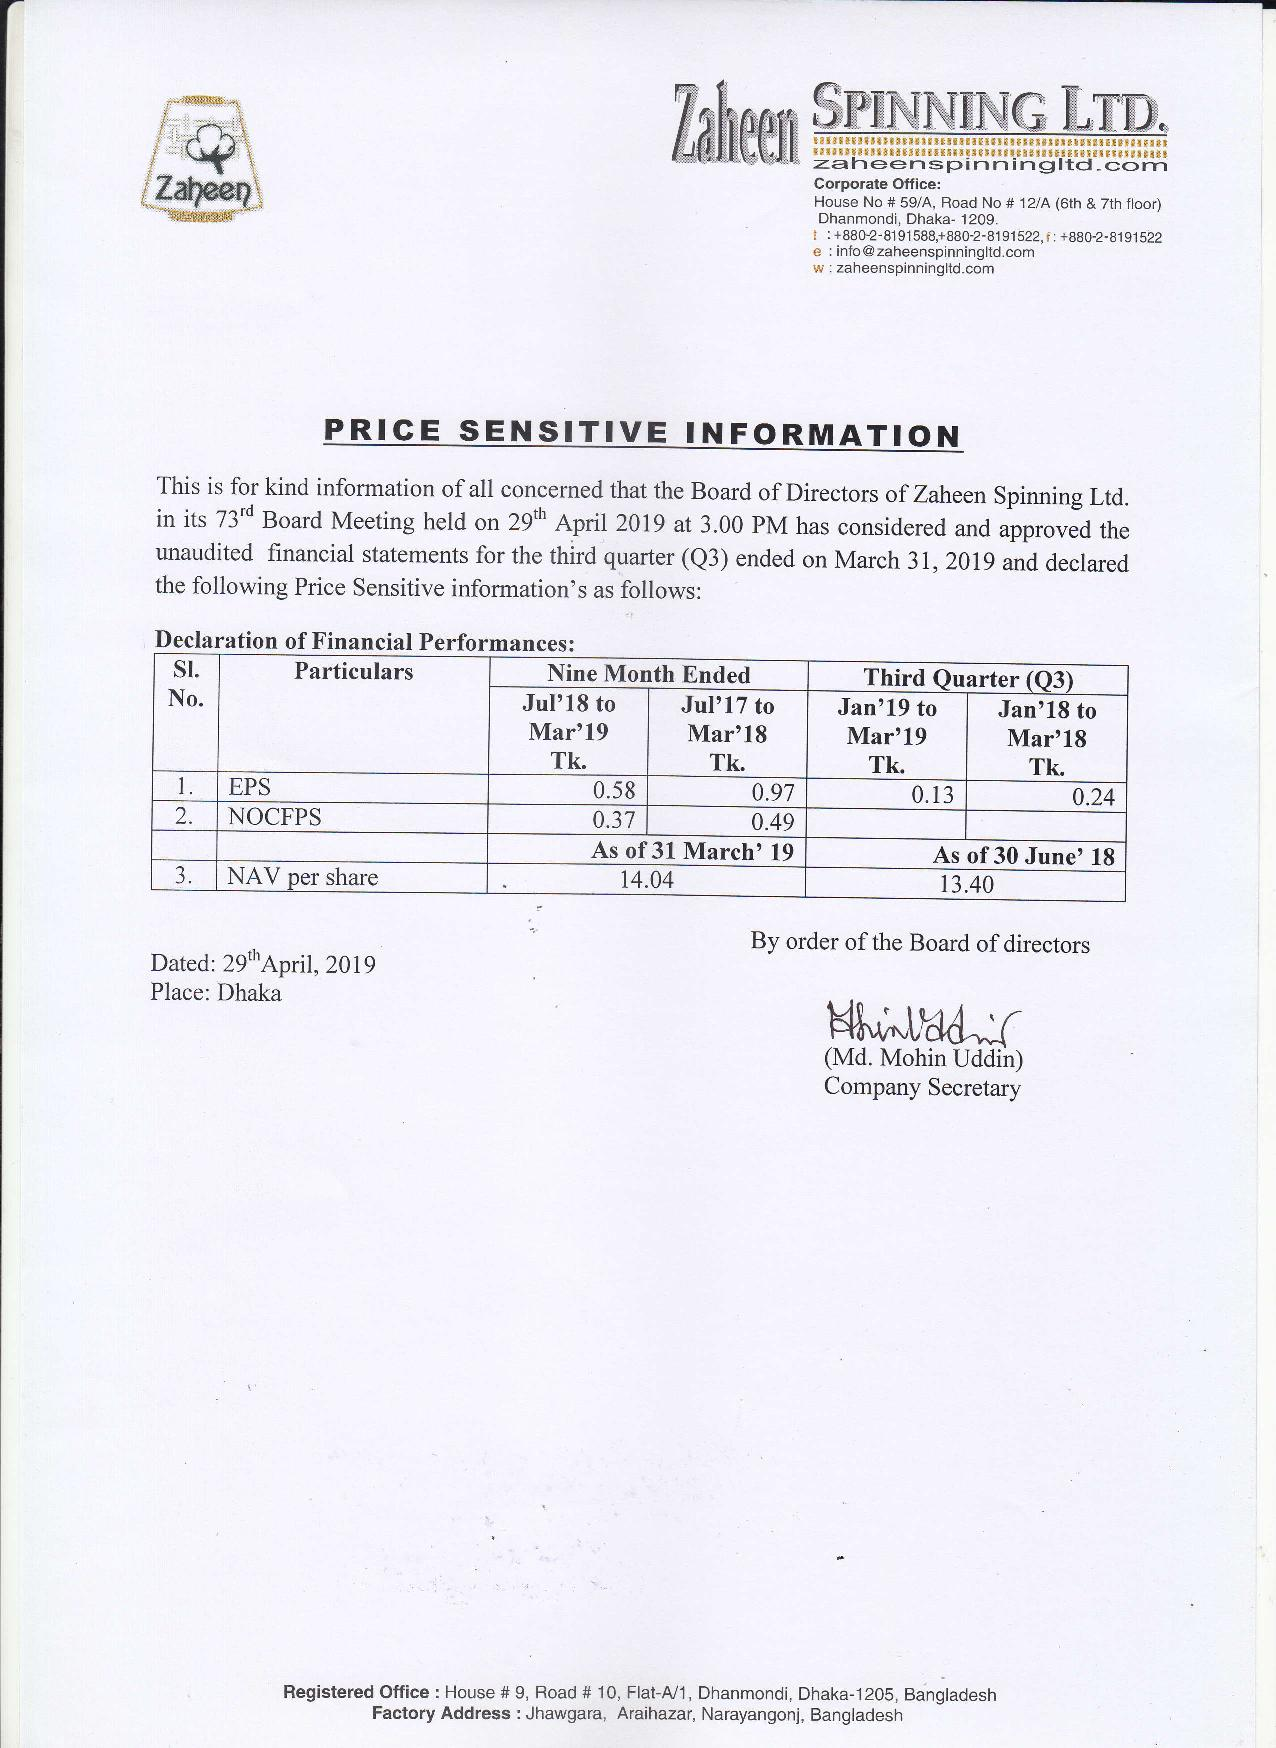 PSI on Un-Audited Q3 FS 2018-2019ZAHEEN-page-001